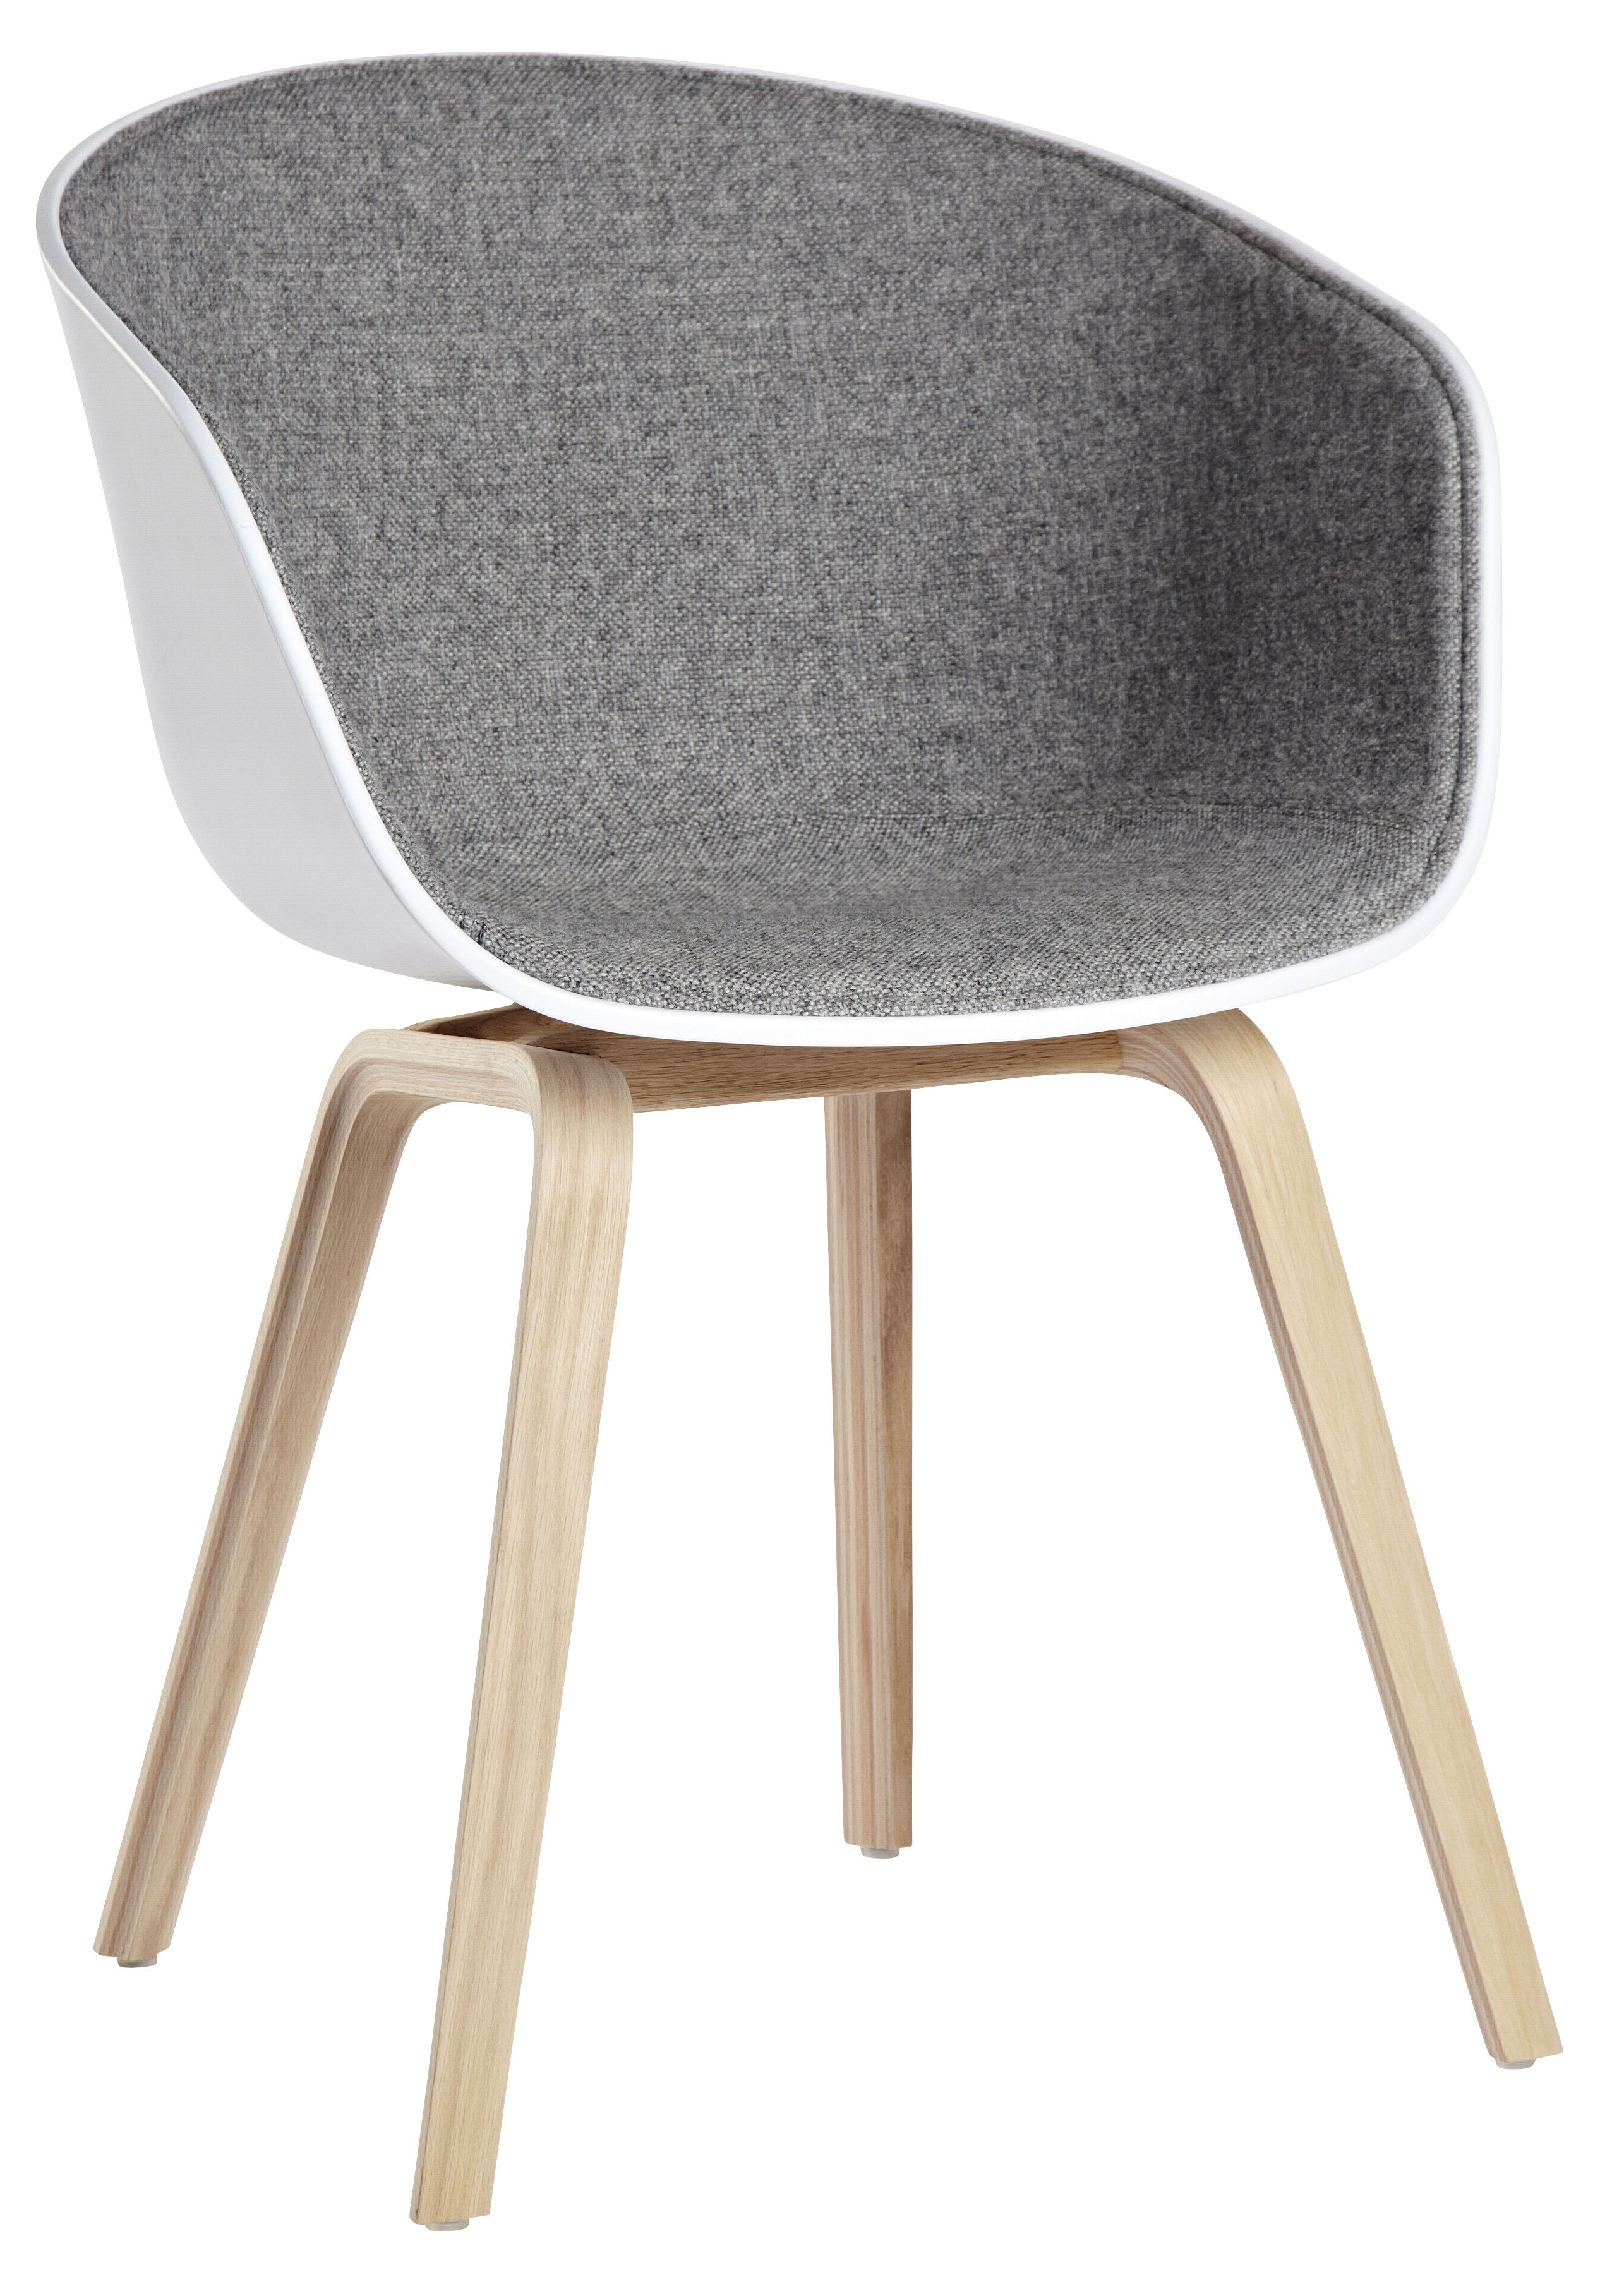 Fauteuil Design Style Italien Scandinave Made In Design - Fauteuil designer